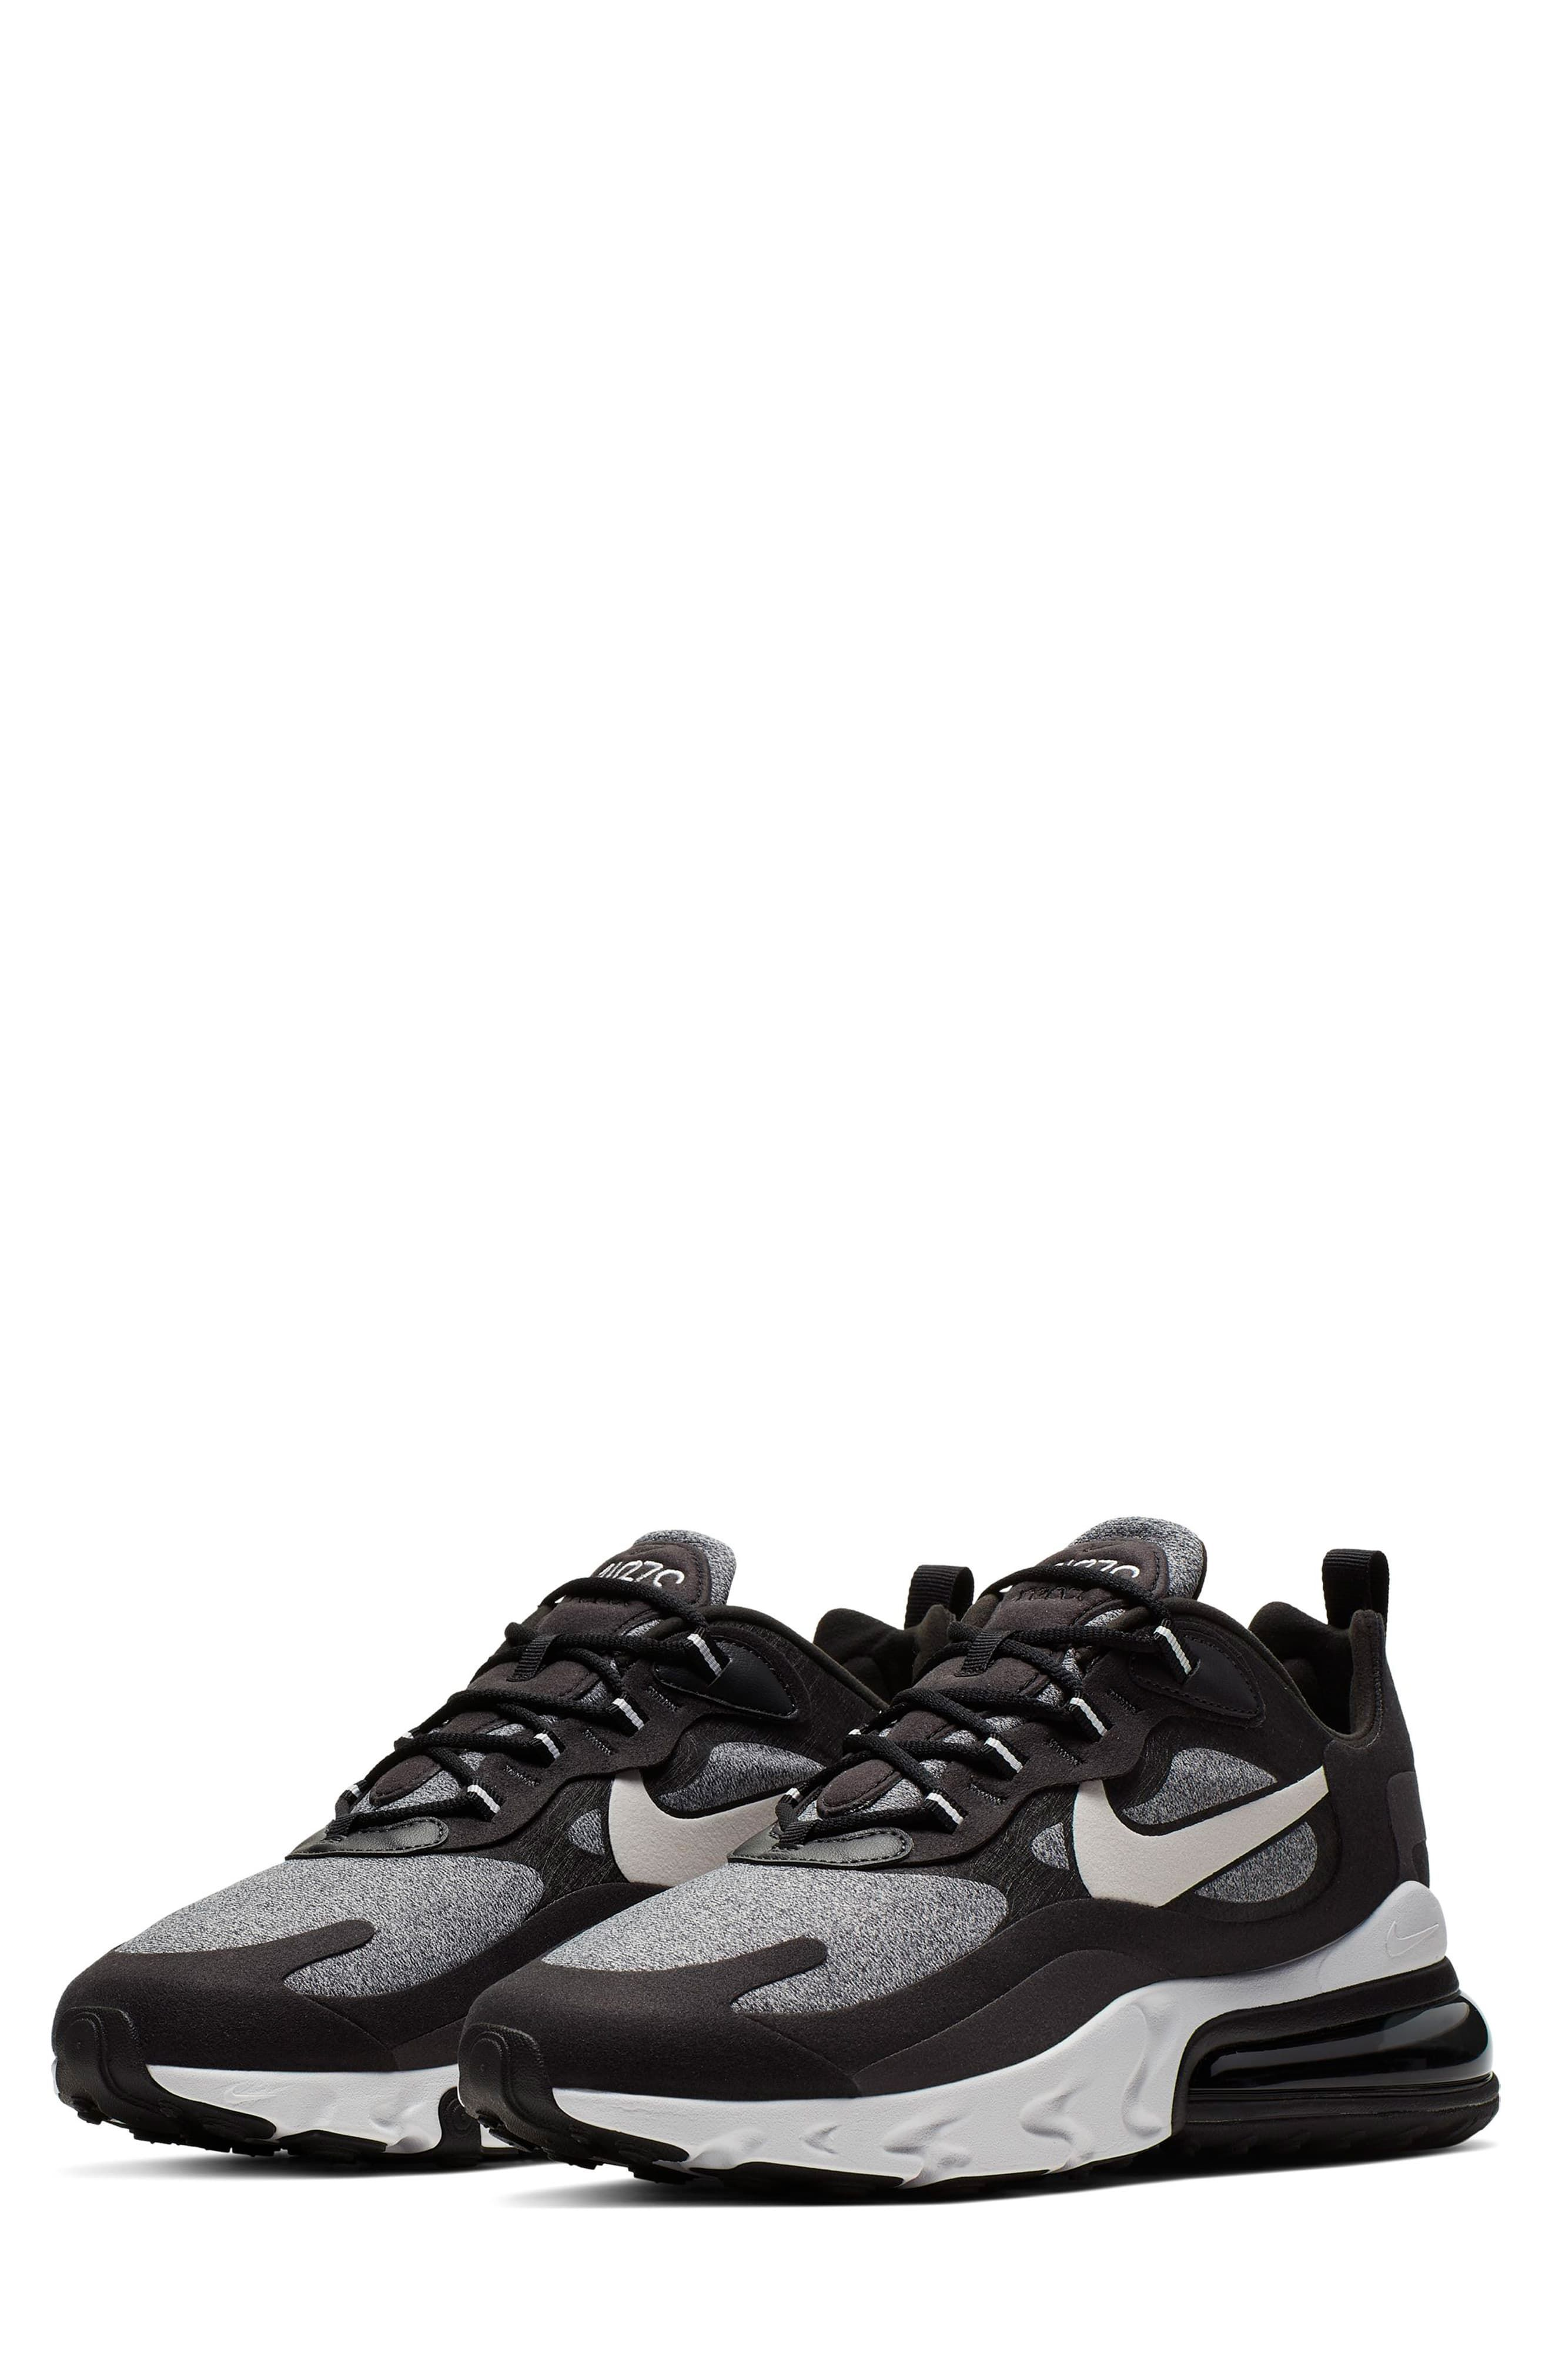 size 40 aca51 2e0fe Nike 270 React Sneaker | Products in 2019 | Air max 270 ...